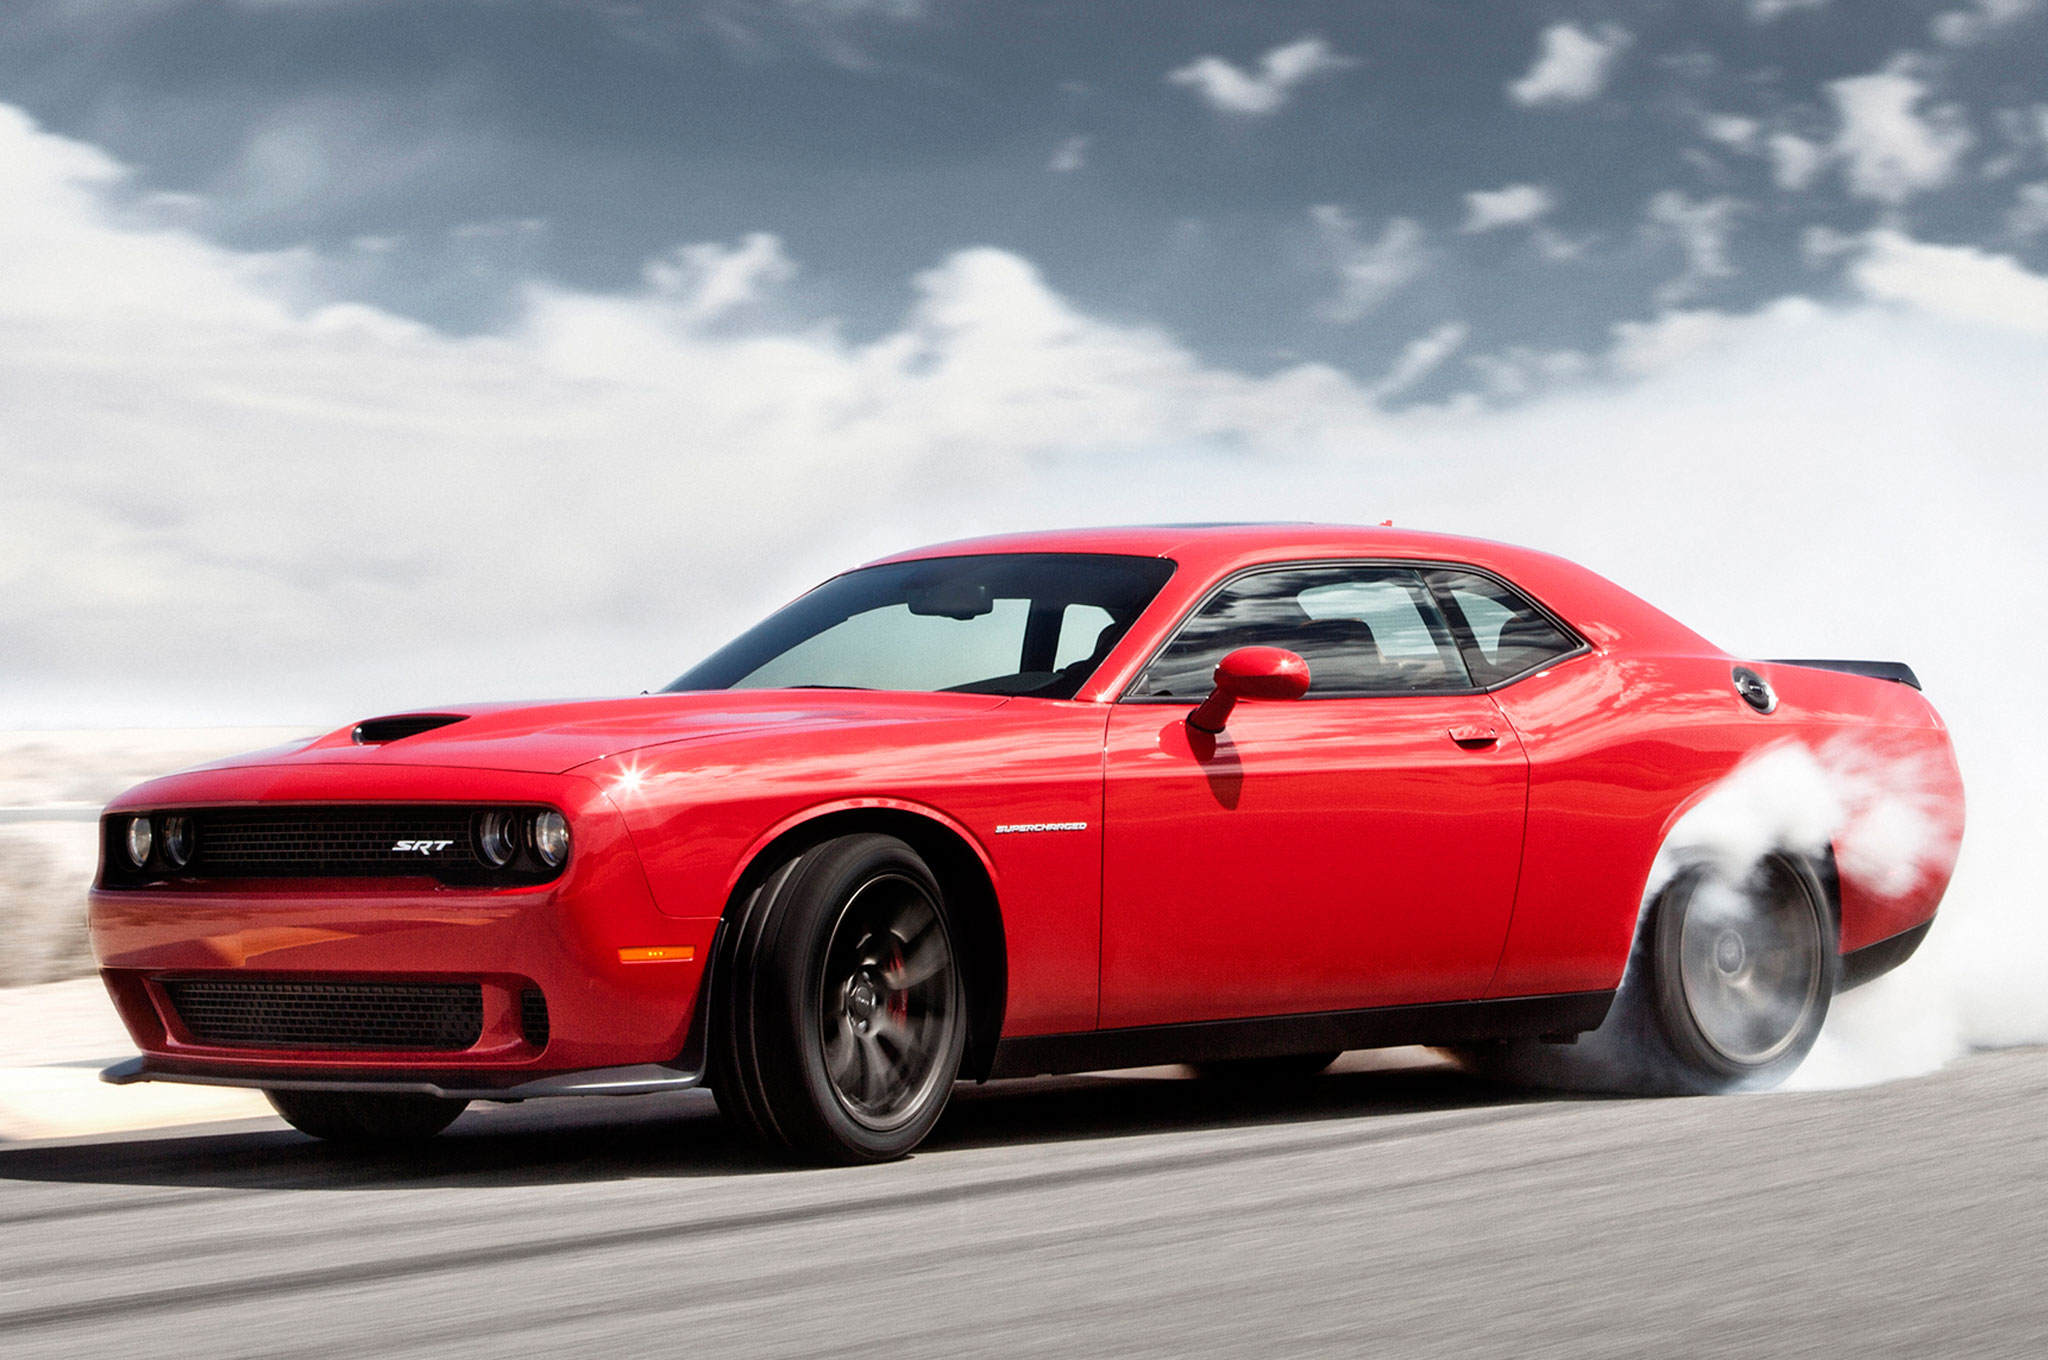 2015 Dodge Challenger SRT Hellcat: Where it Stands in Speed - Motor ...